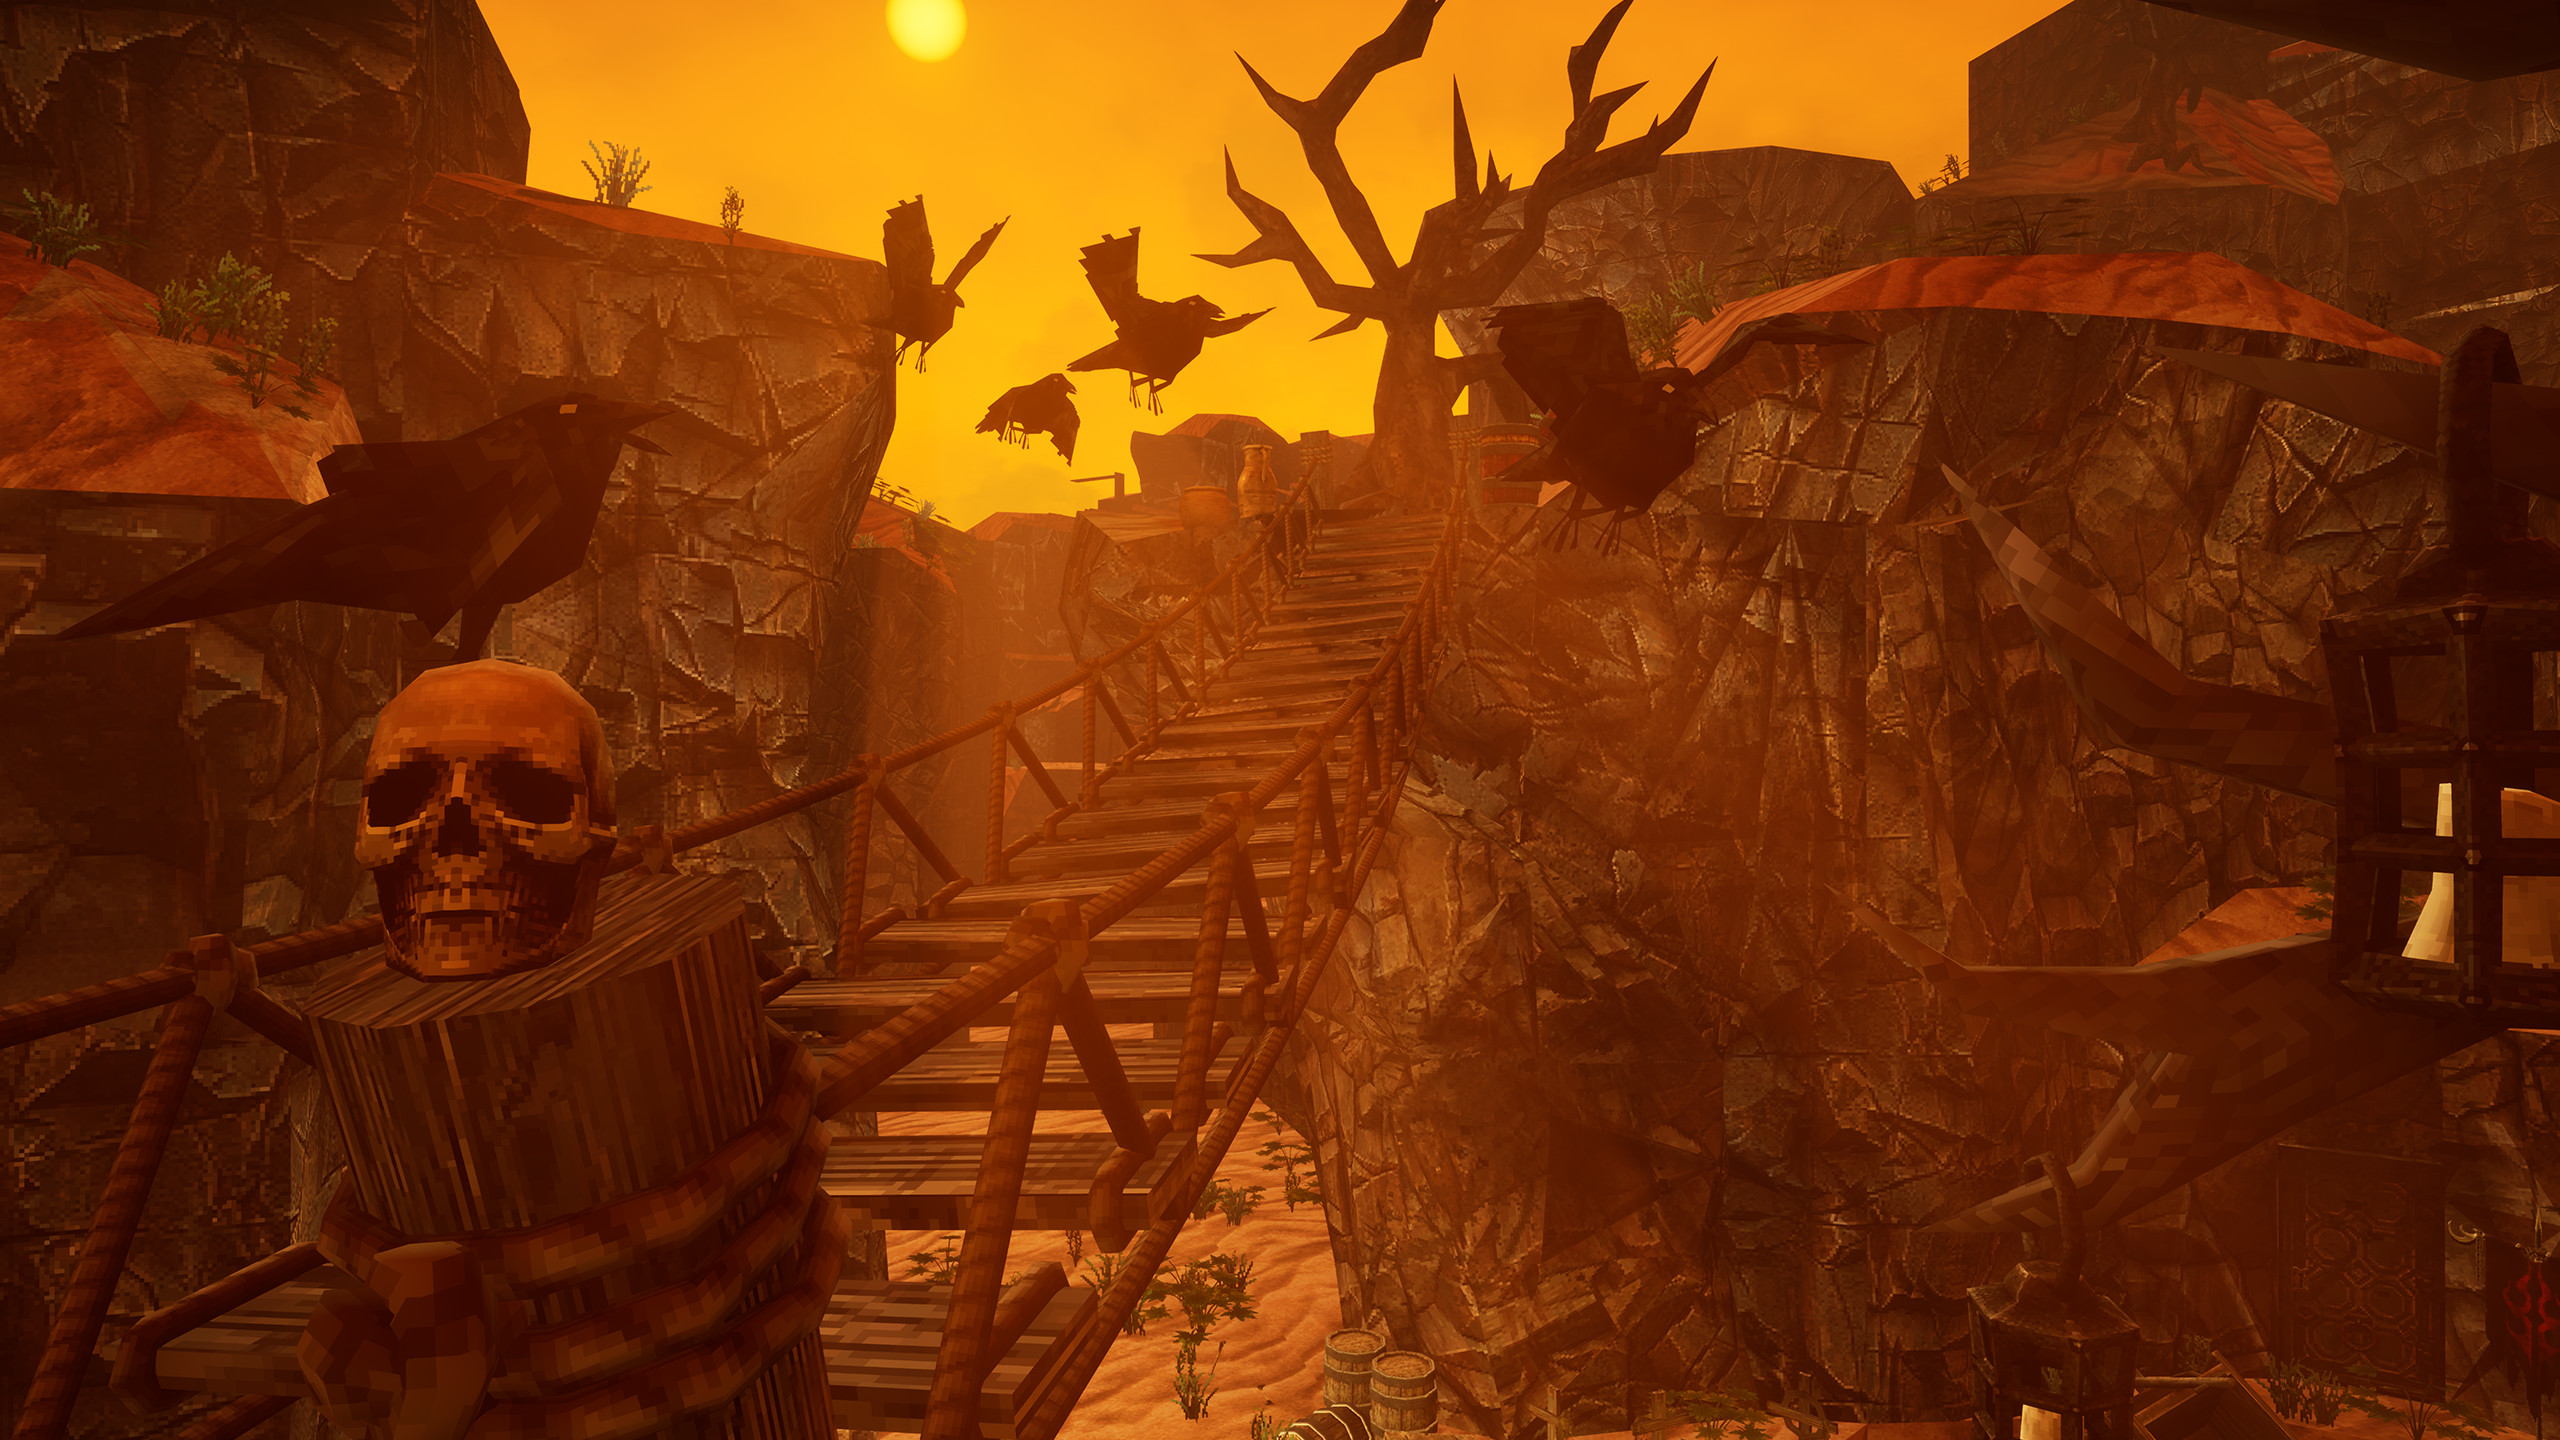 GRAVEN Is Available As A Limited Time Demo Via Steam